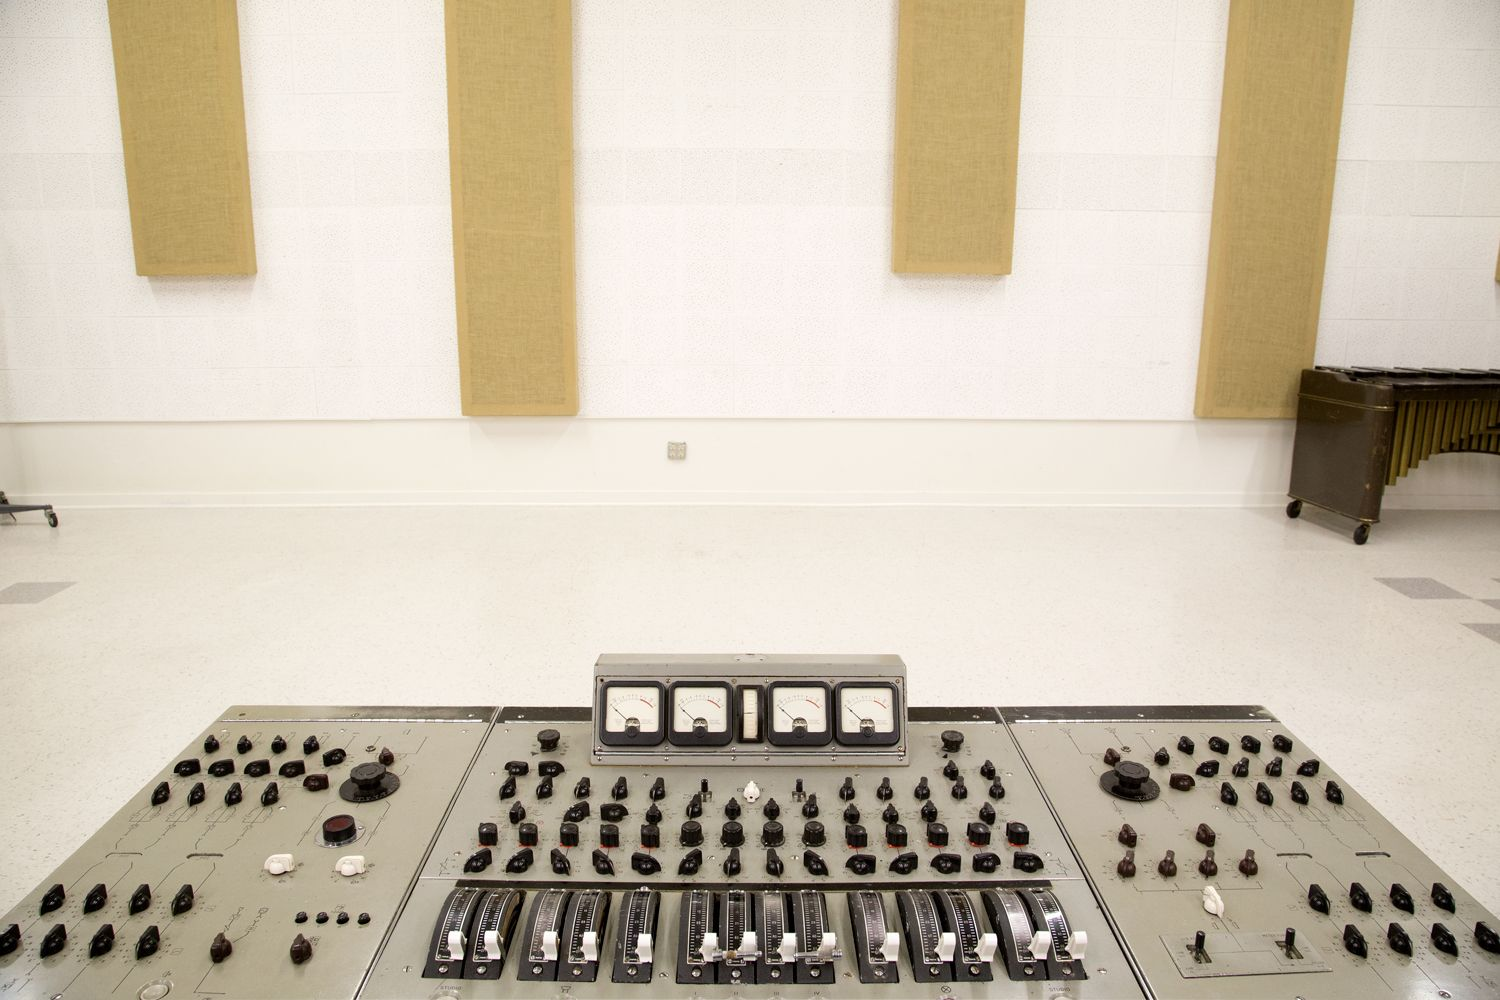 EMI ABBEY ROAD REDD 37 HISTORIC BEATLES CONSOLE The